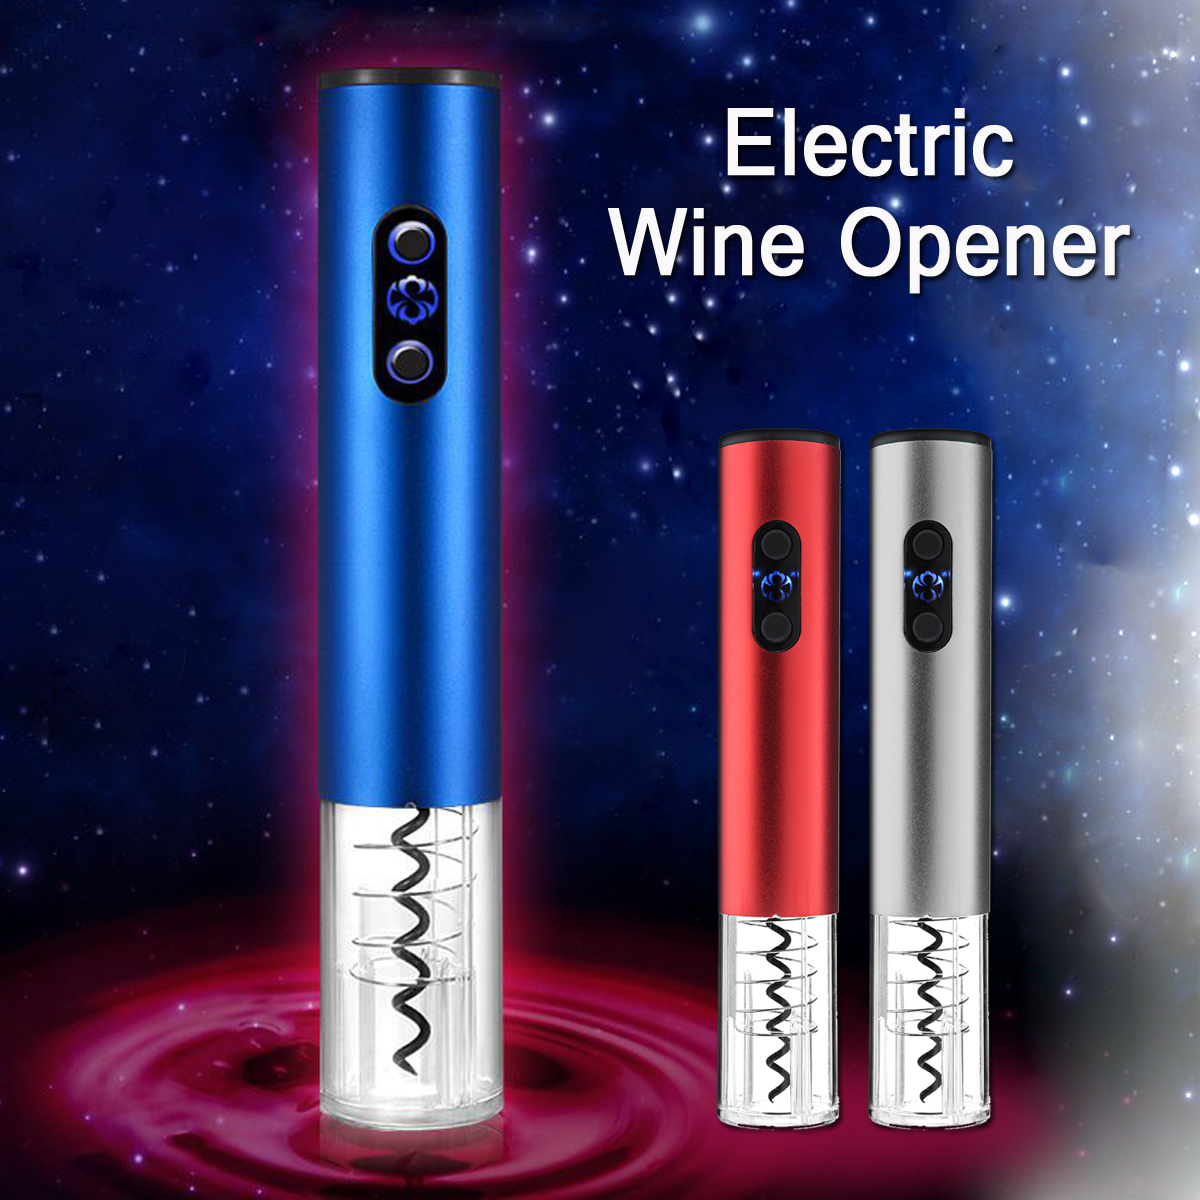 110V-220V Electric Wine Opener with Charger Wine Bottle Opener Wine Accessories Gift Tool Set